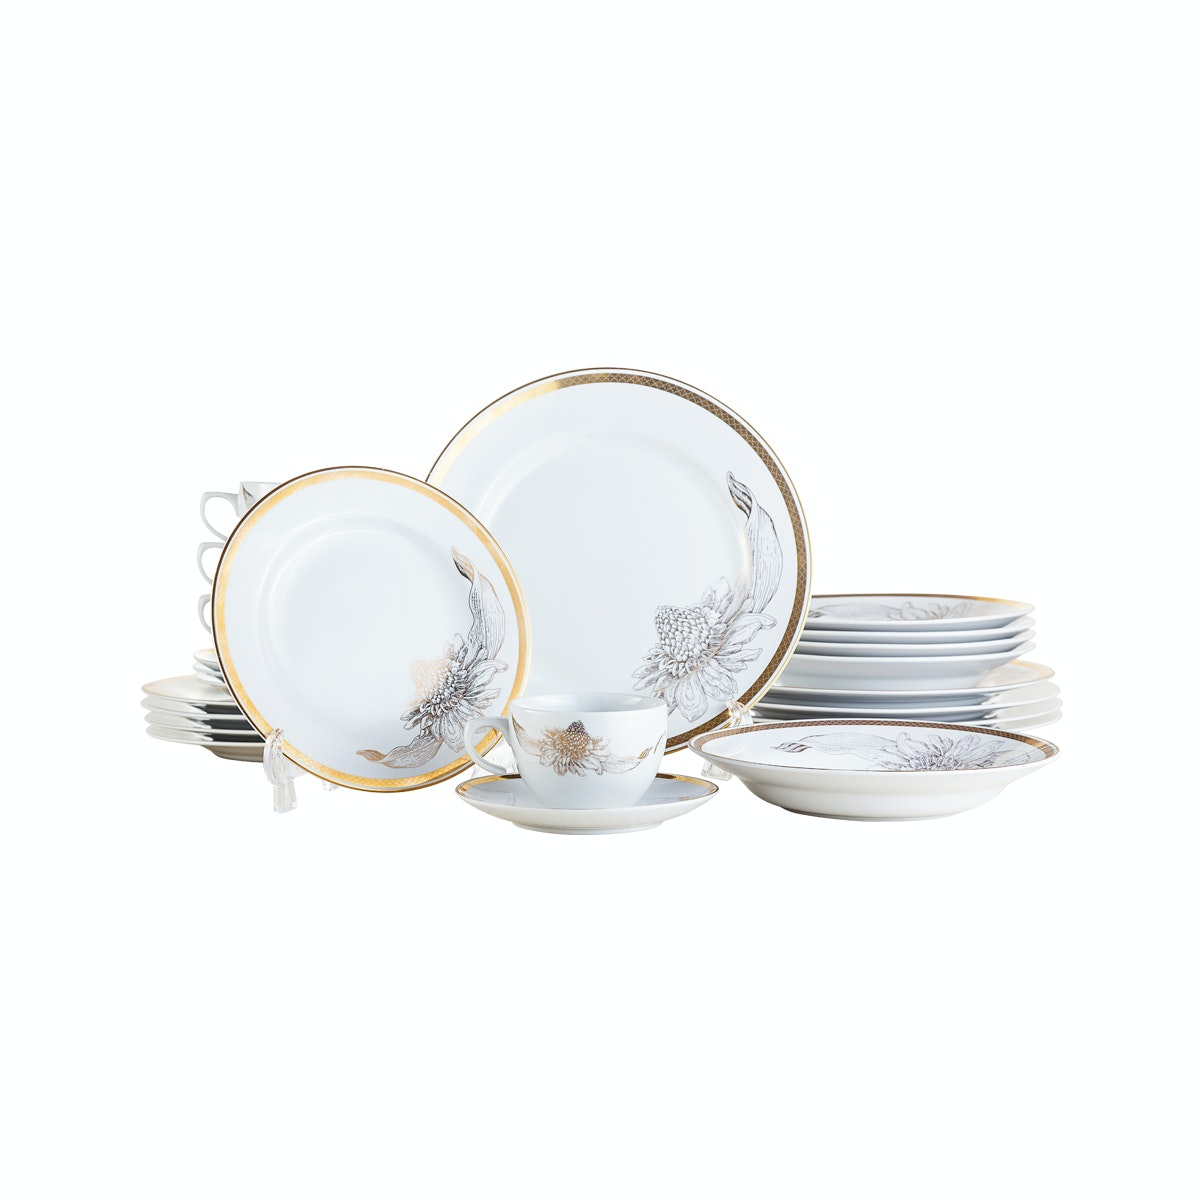 Tafel21 Dinner Set/Piring Makan Set Kecombrang Gold Elegan 20 pcs/set